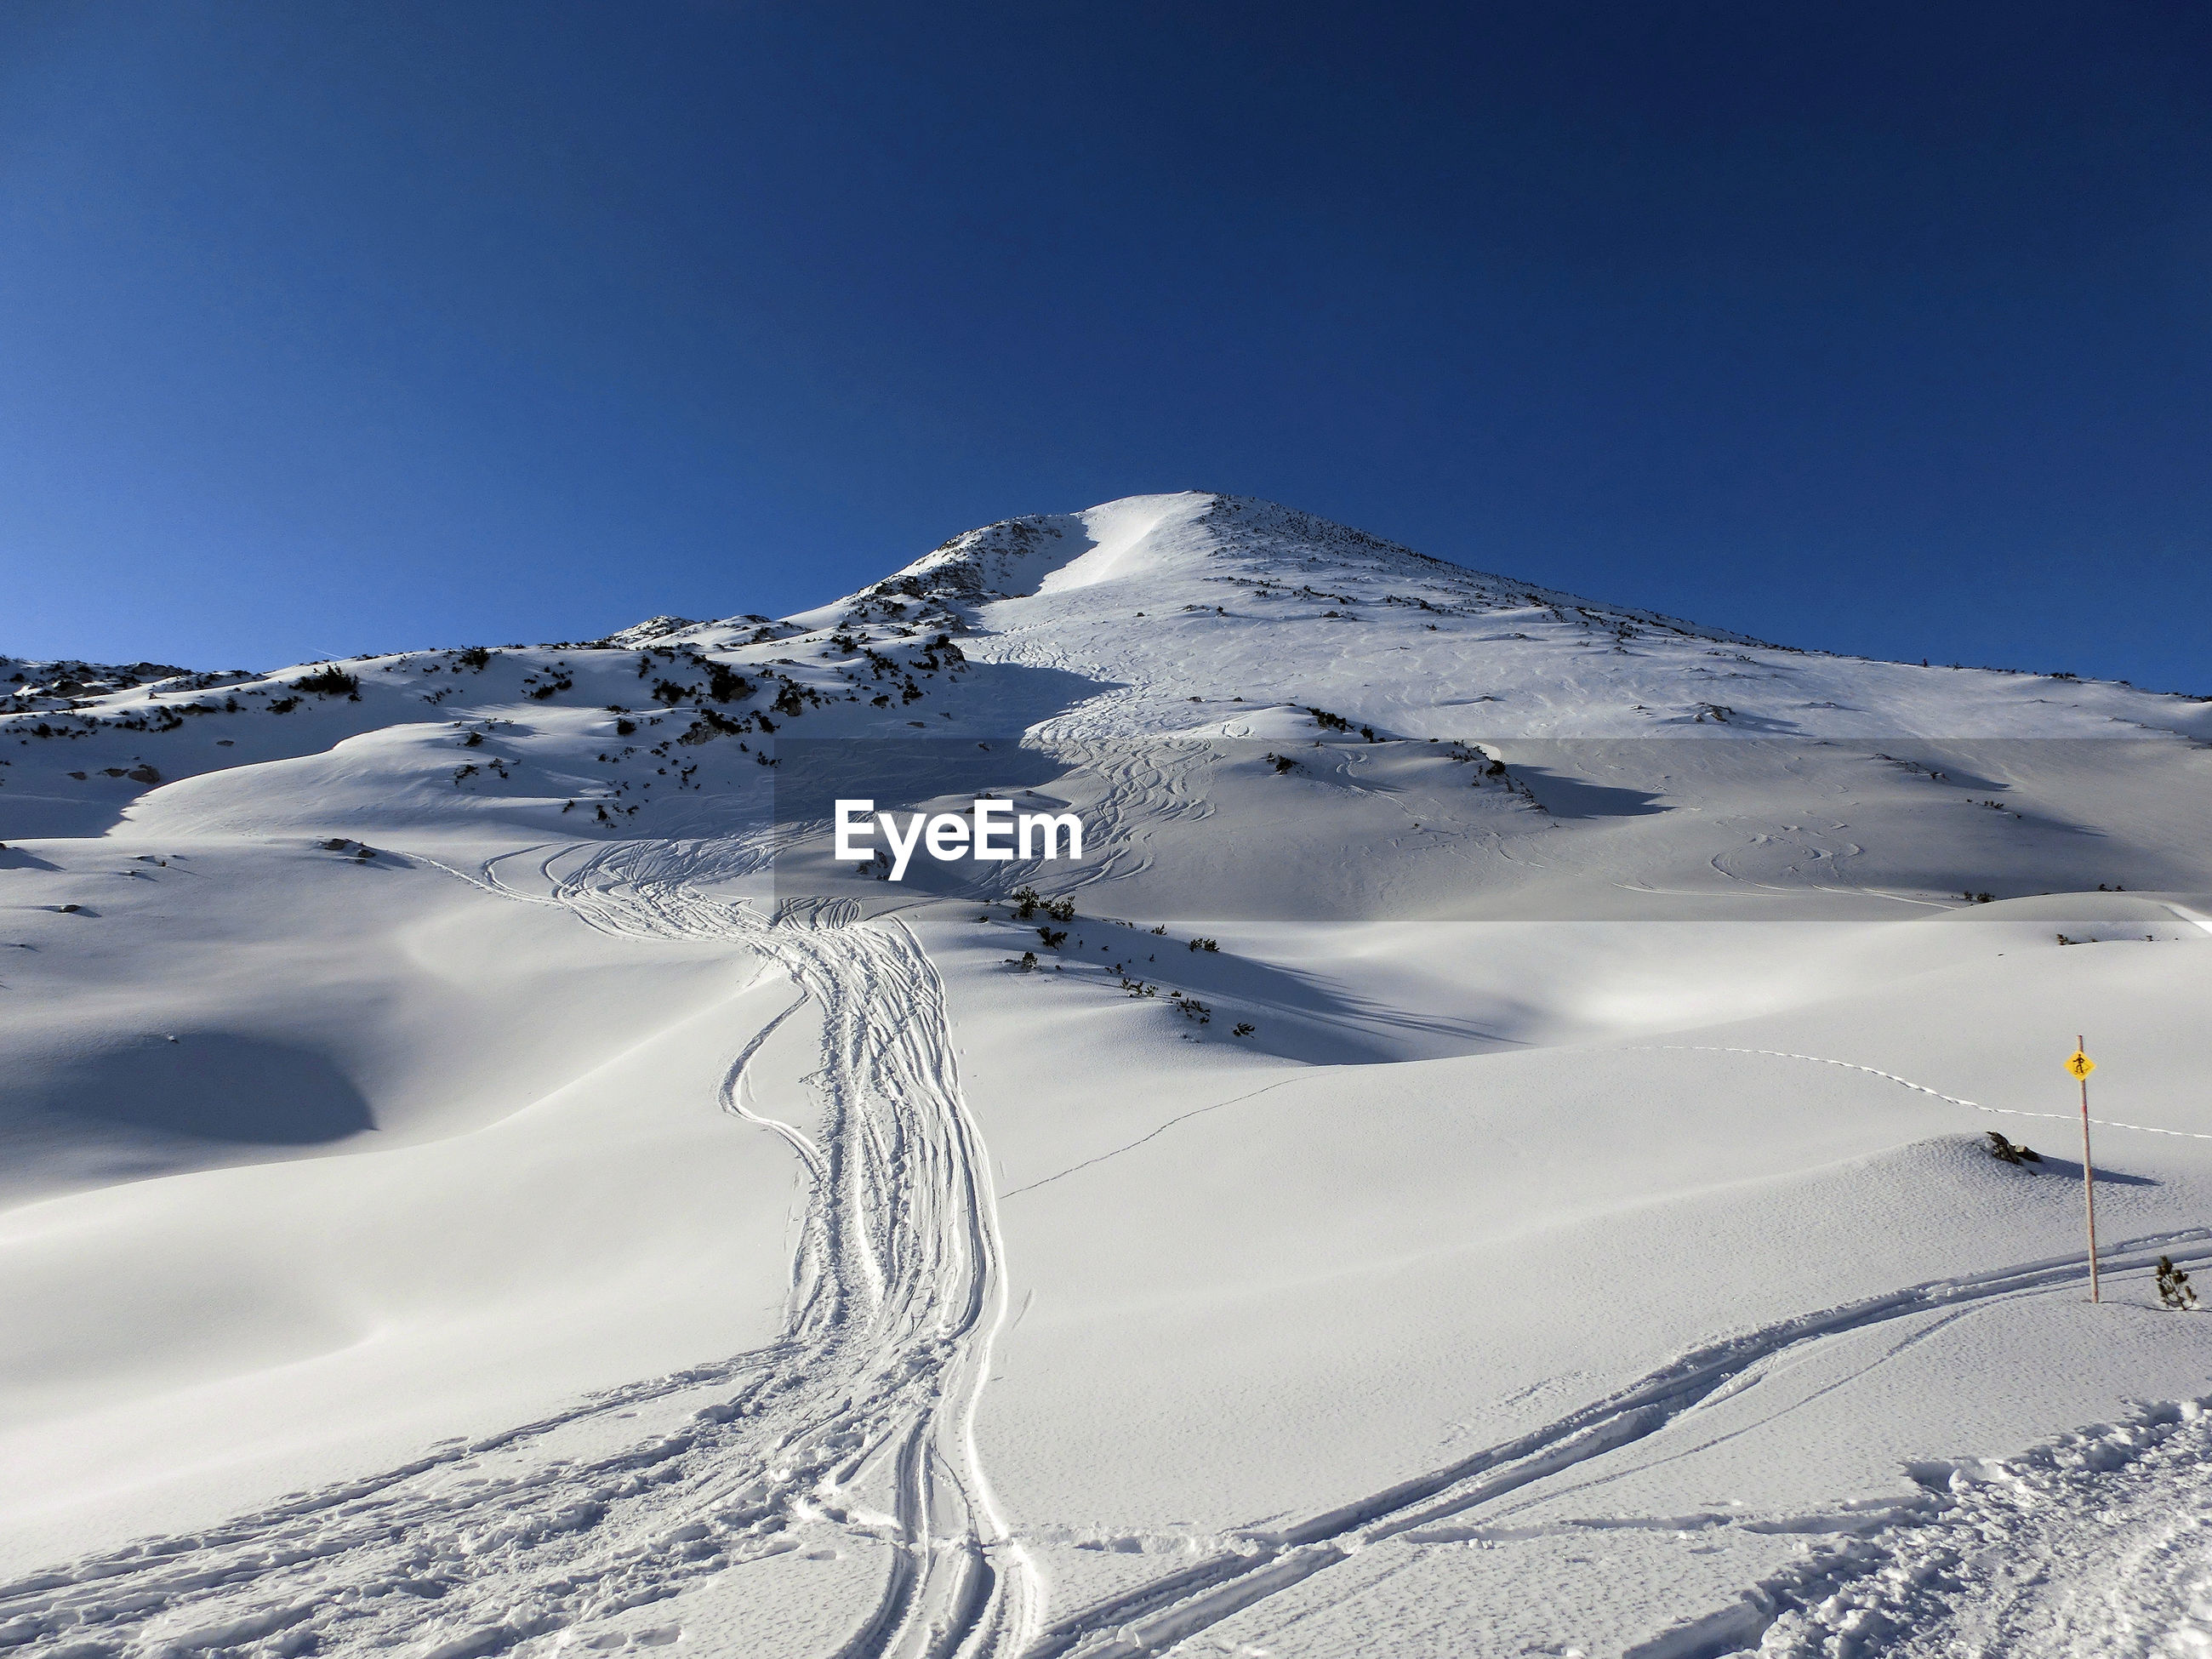 SNOW COVERED MOUNTAINS AGAINST CLEAR BLUE SKY